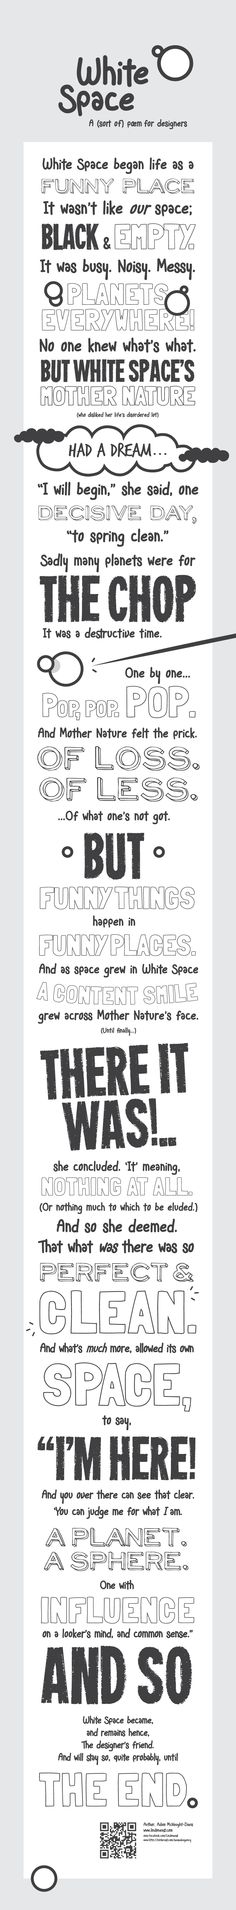 White Space infographic: A sort of poem for Designers.